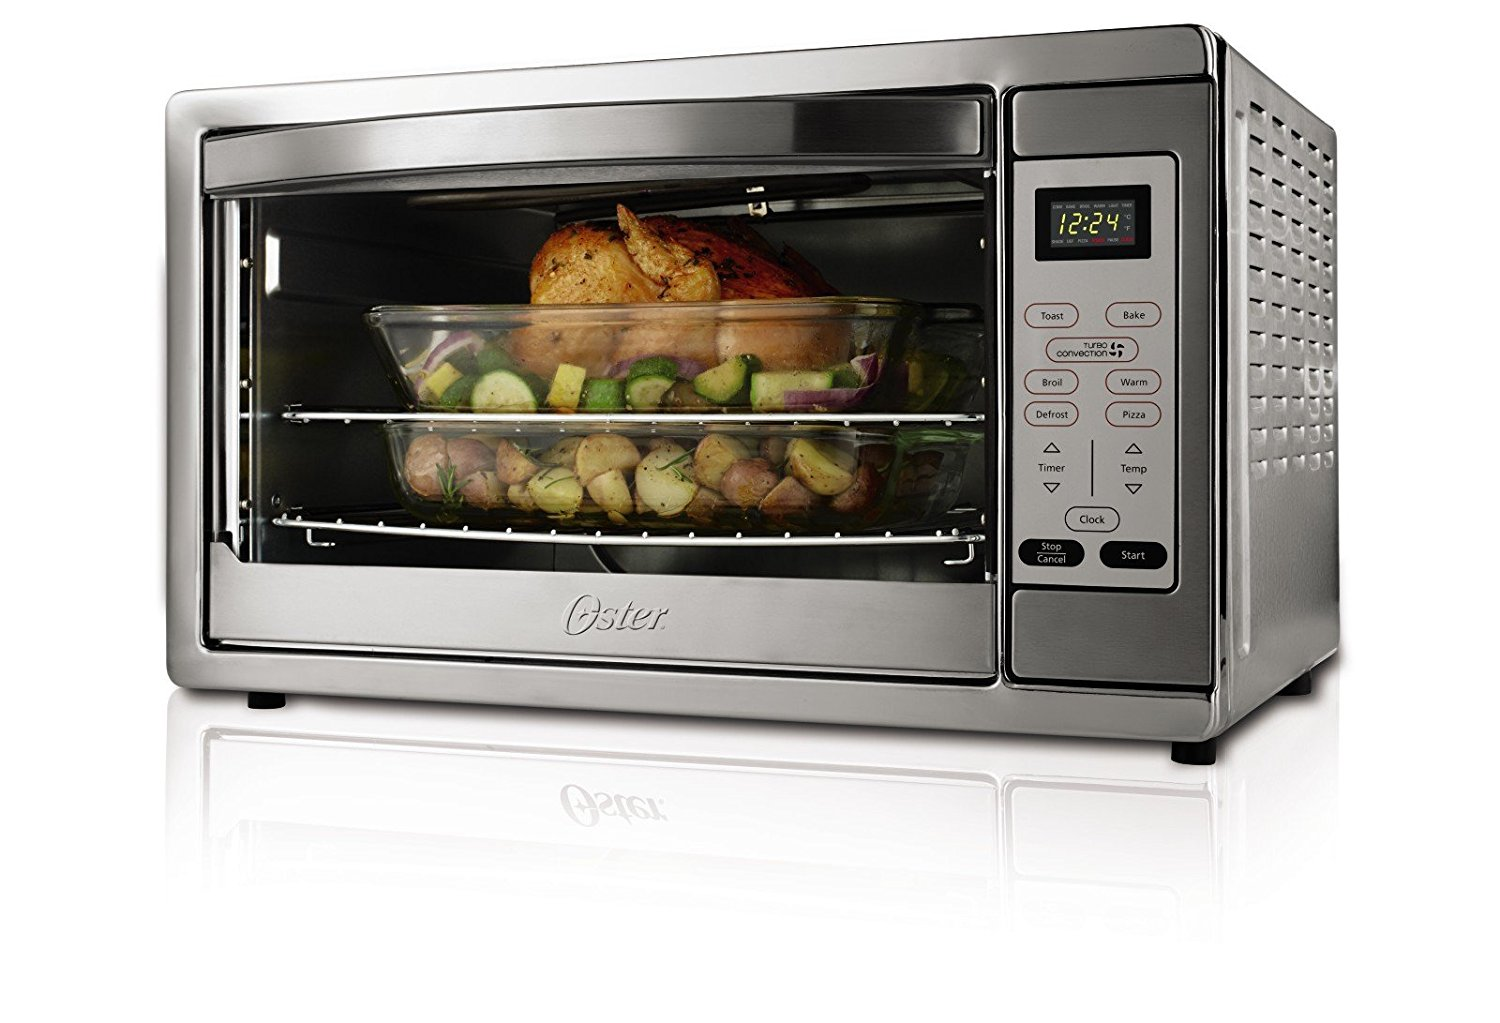 Countertop Convection Oven Ratings : Top 10 Convection Toaster Oven Reviews - BestReviewy.com